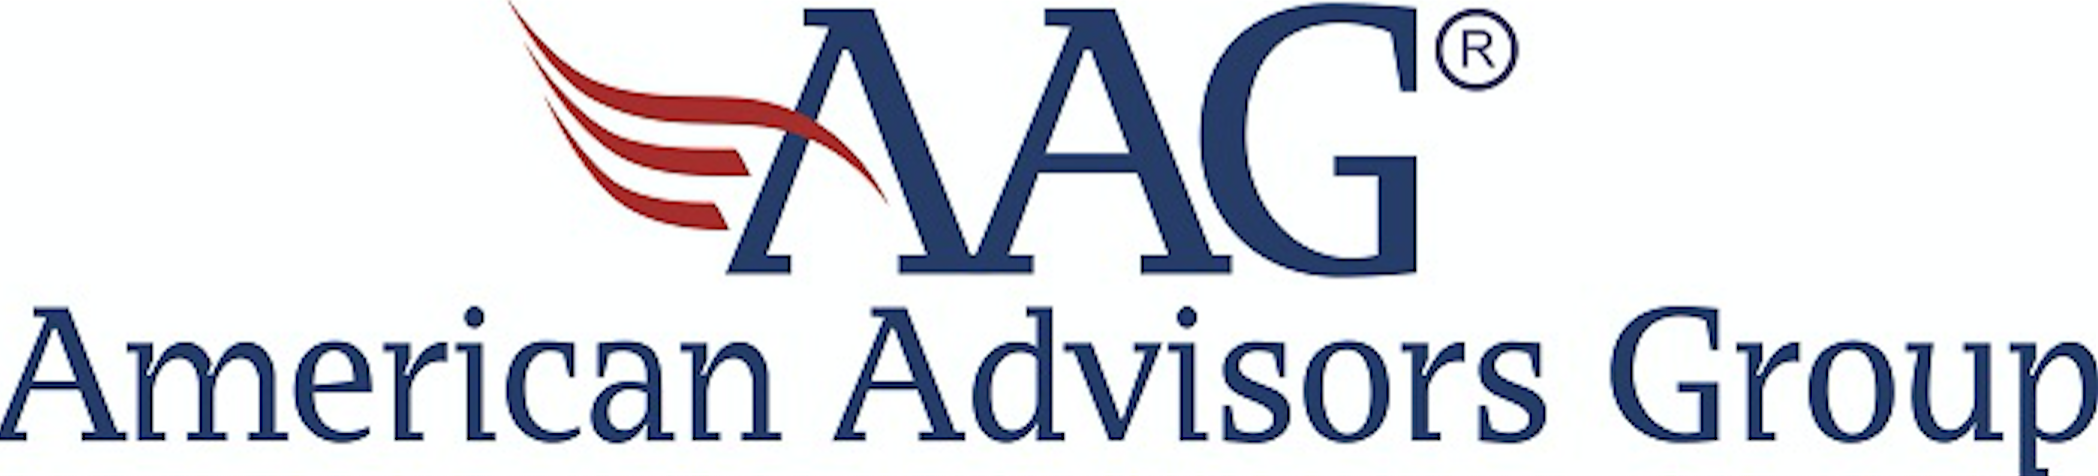 American Advisor's Group